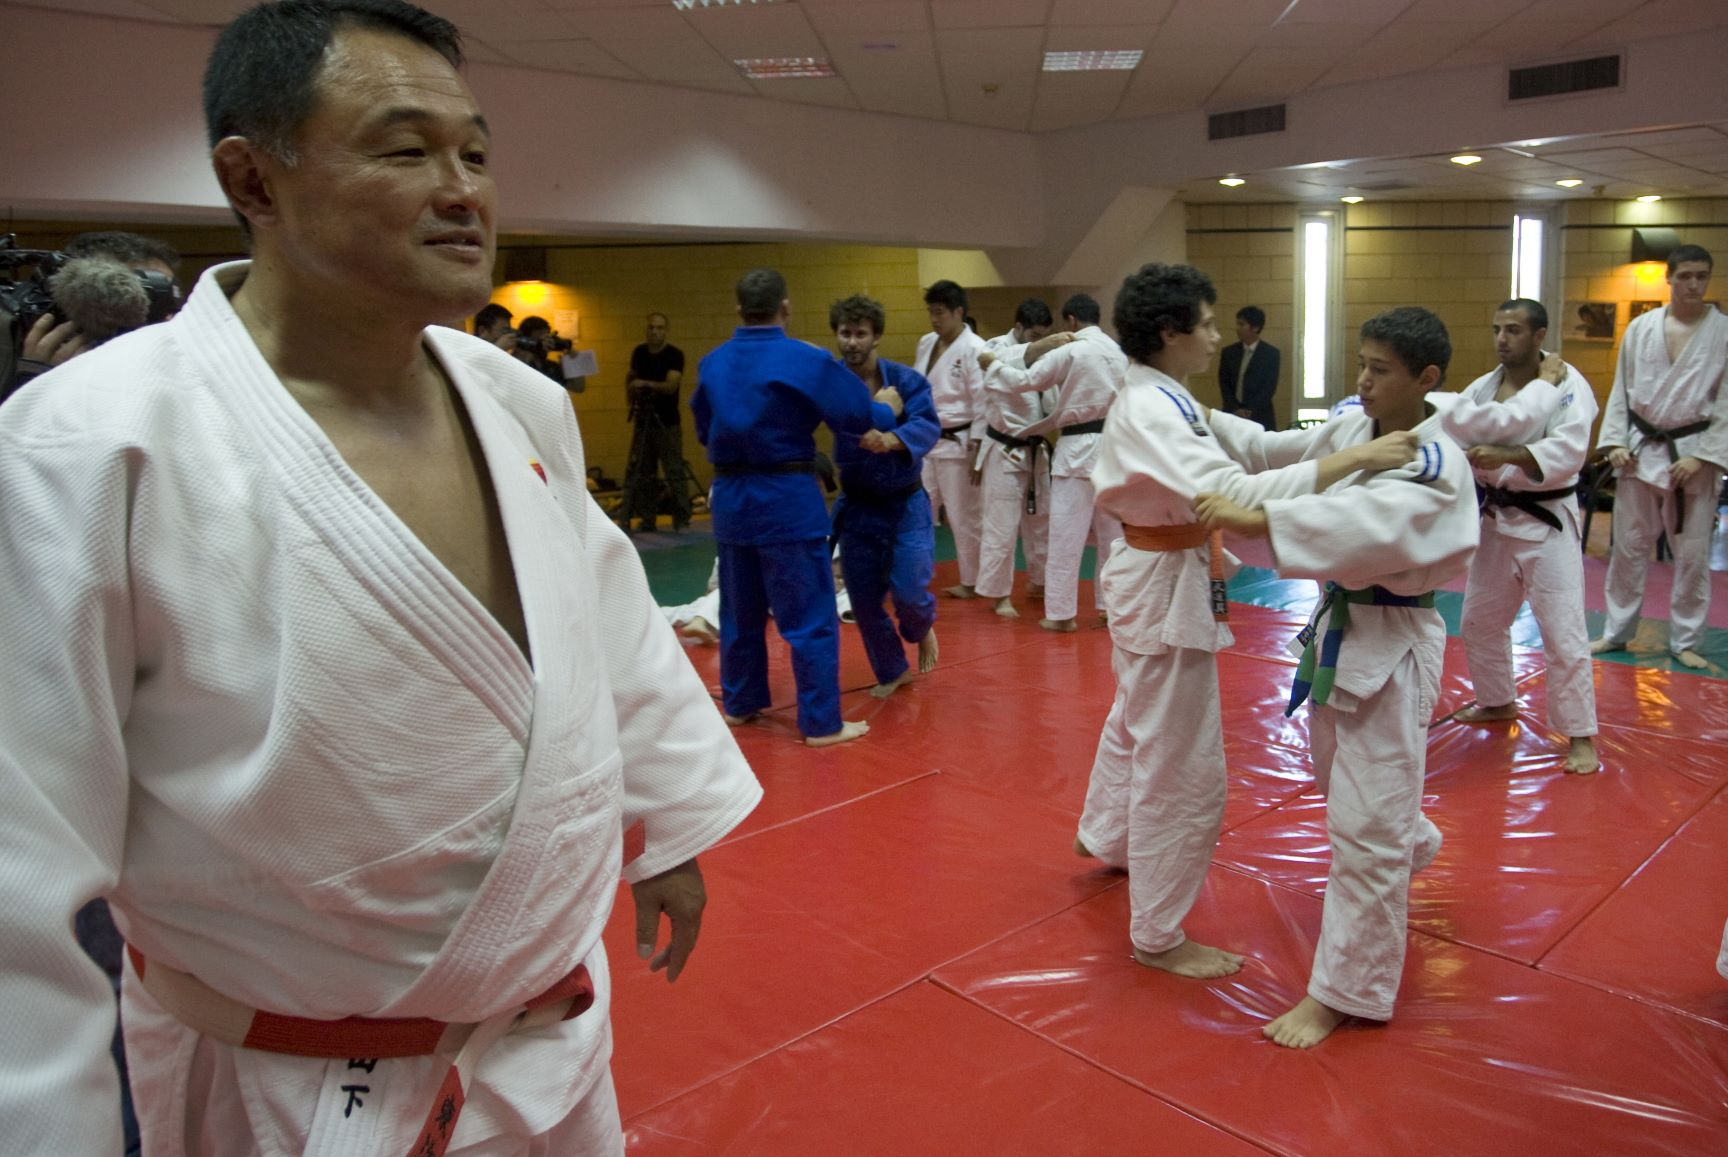 Japan's Judoka Yashiro Yamashita (L) gives a lecture as he teaches Judo techniques to Palestinian and Israeli students on July 21, 2010 in Jerusalem. (AFP)